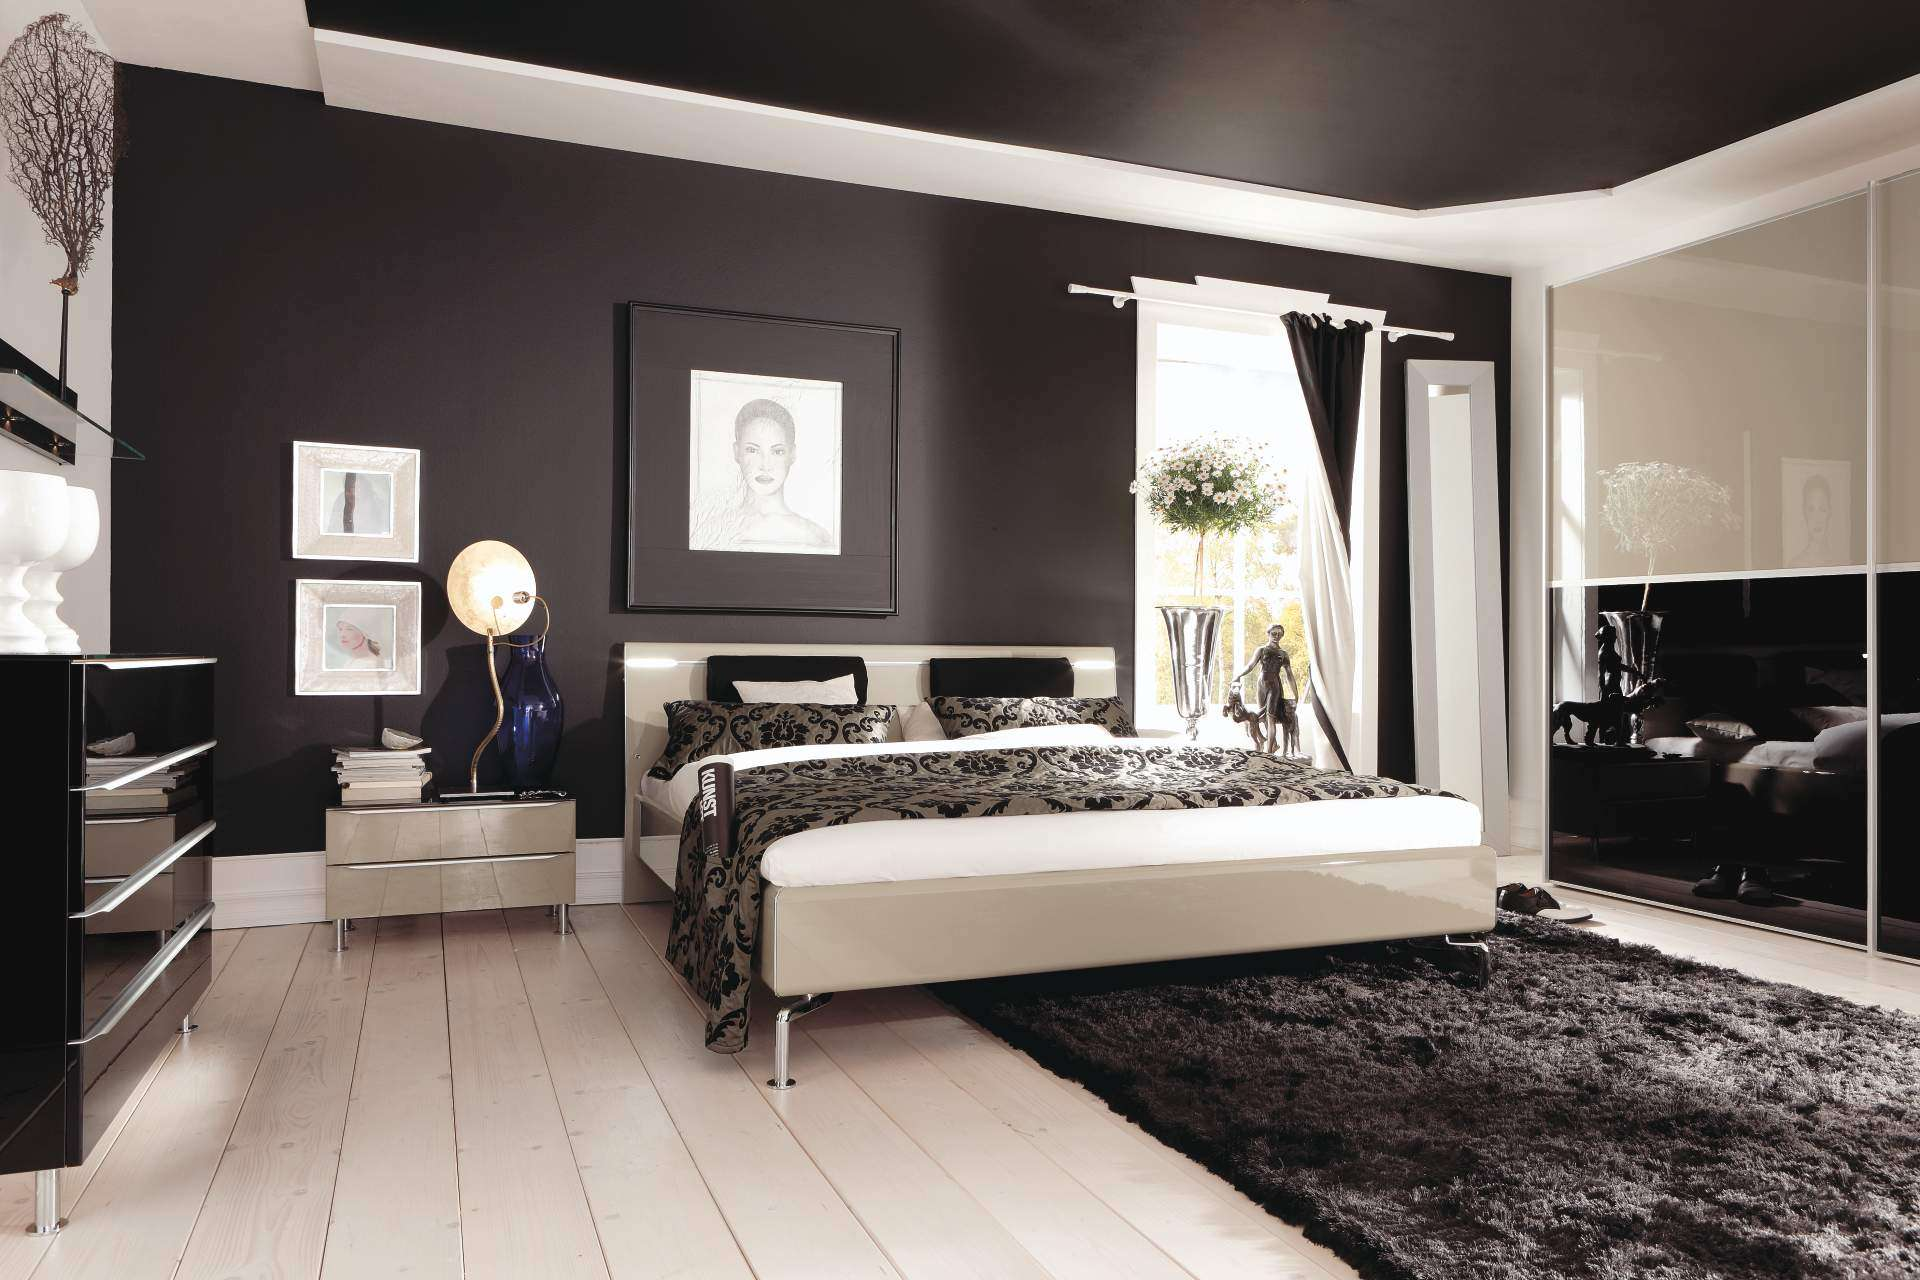 Bedroom Modern Interior Decor Hardwood Tile